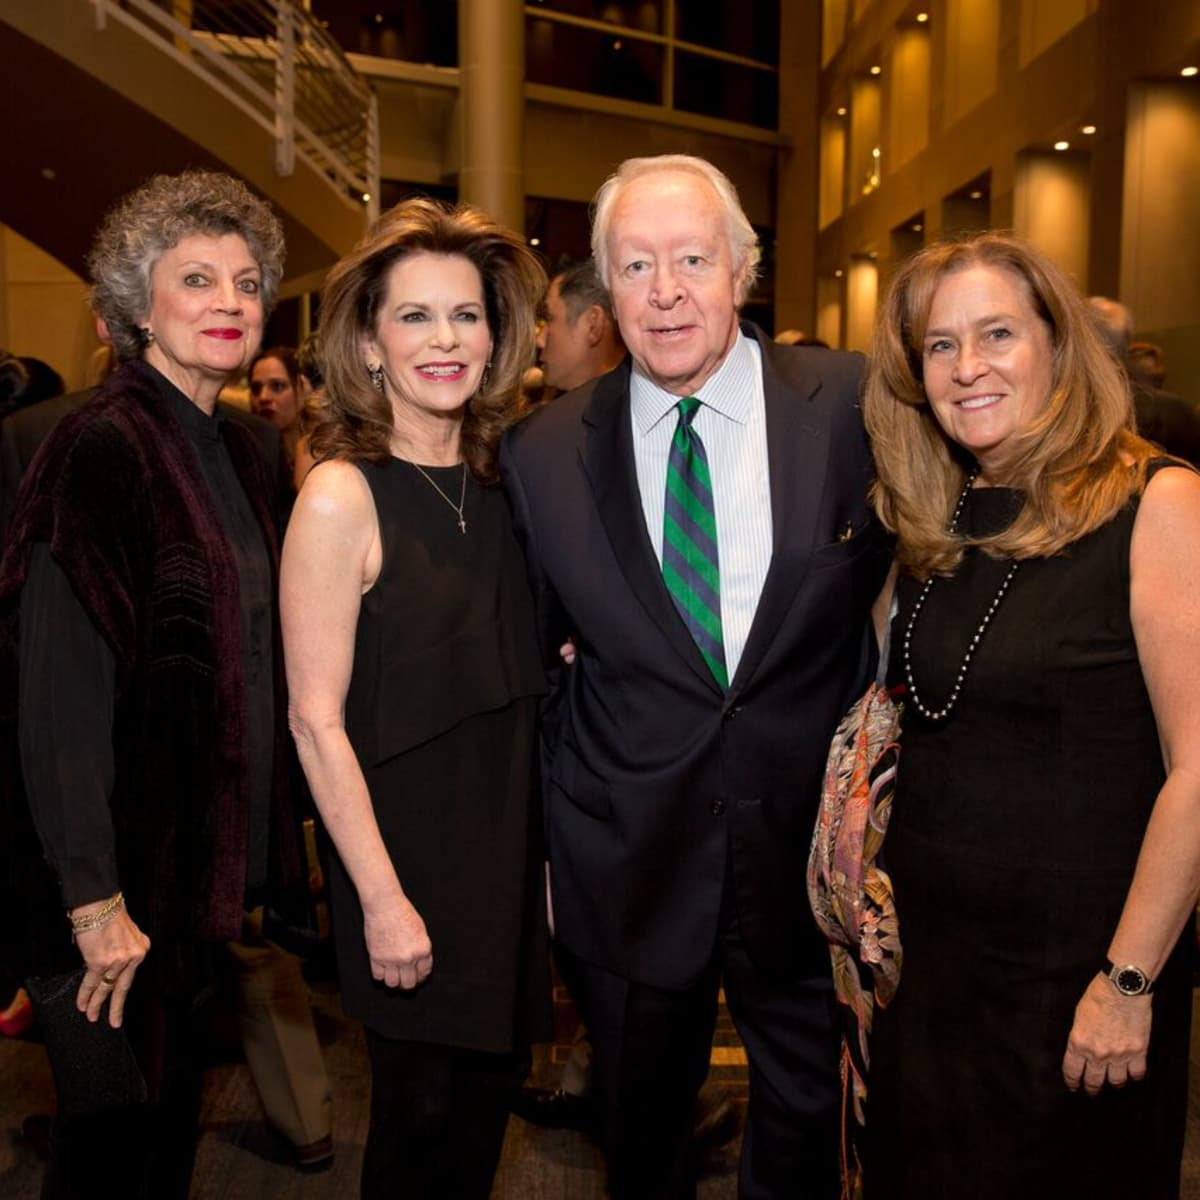 Tennis gala, Feb. 2016, Candy Kyle, Susie Cunningham, Mike McSpadden, Lisa Caledonia